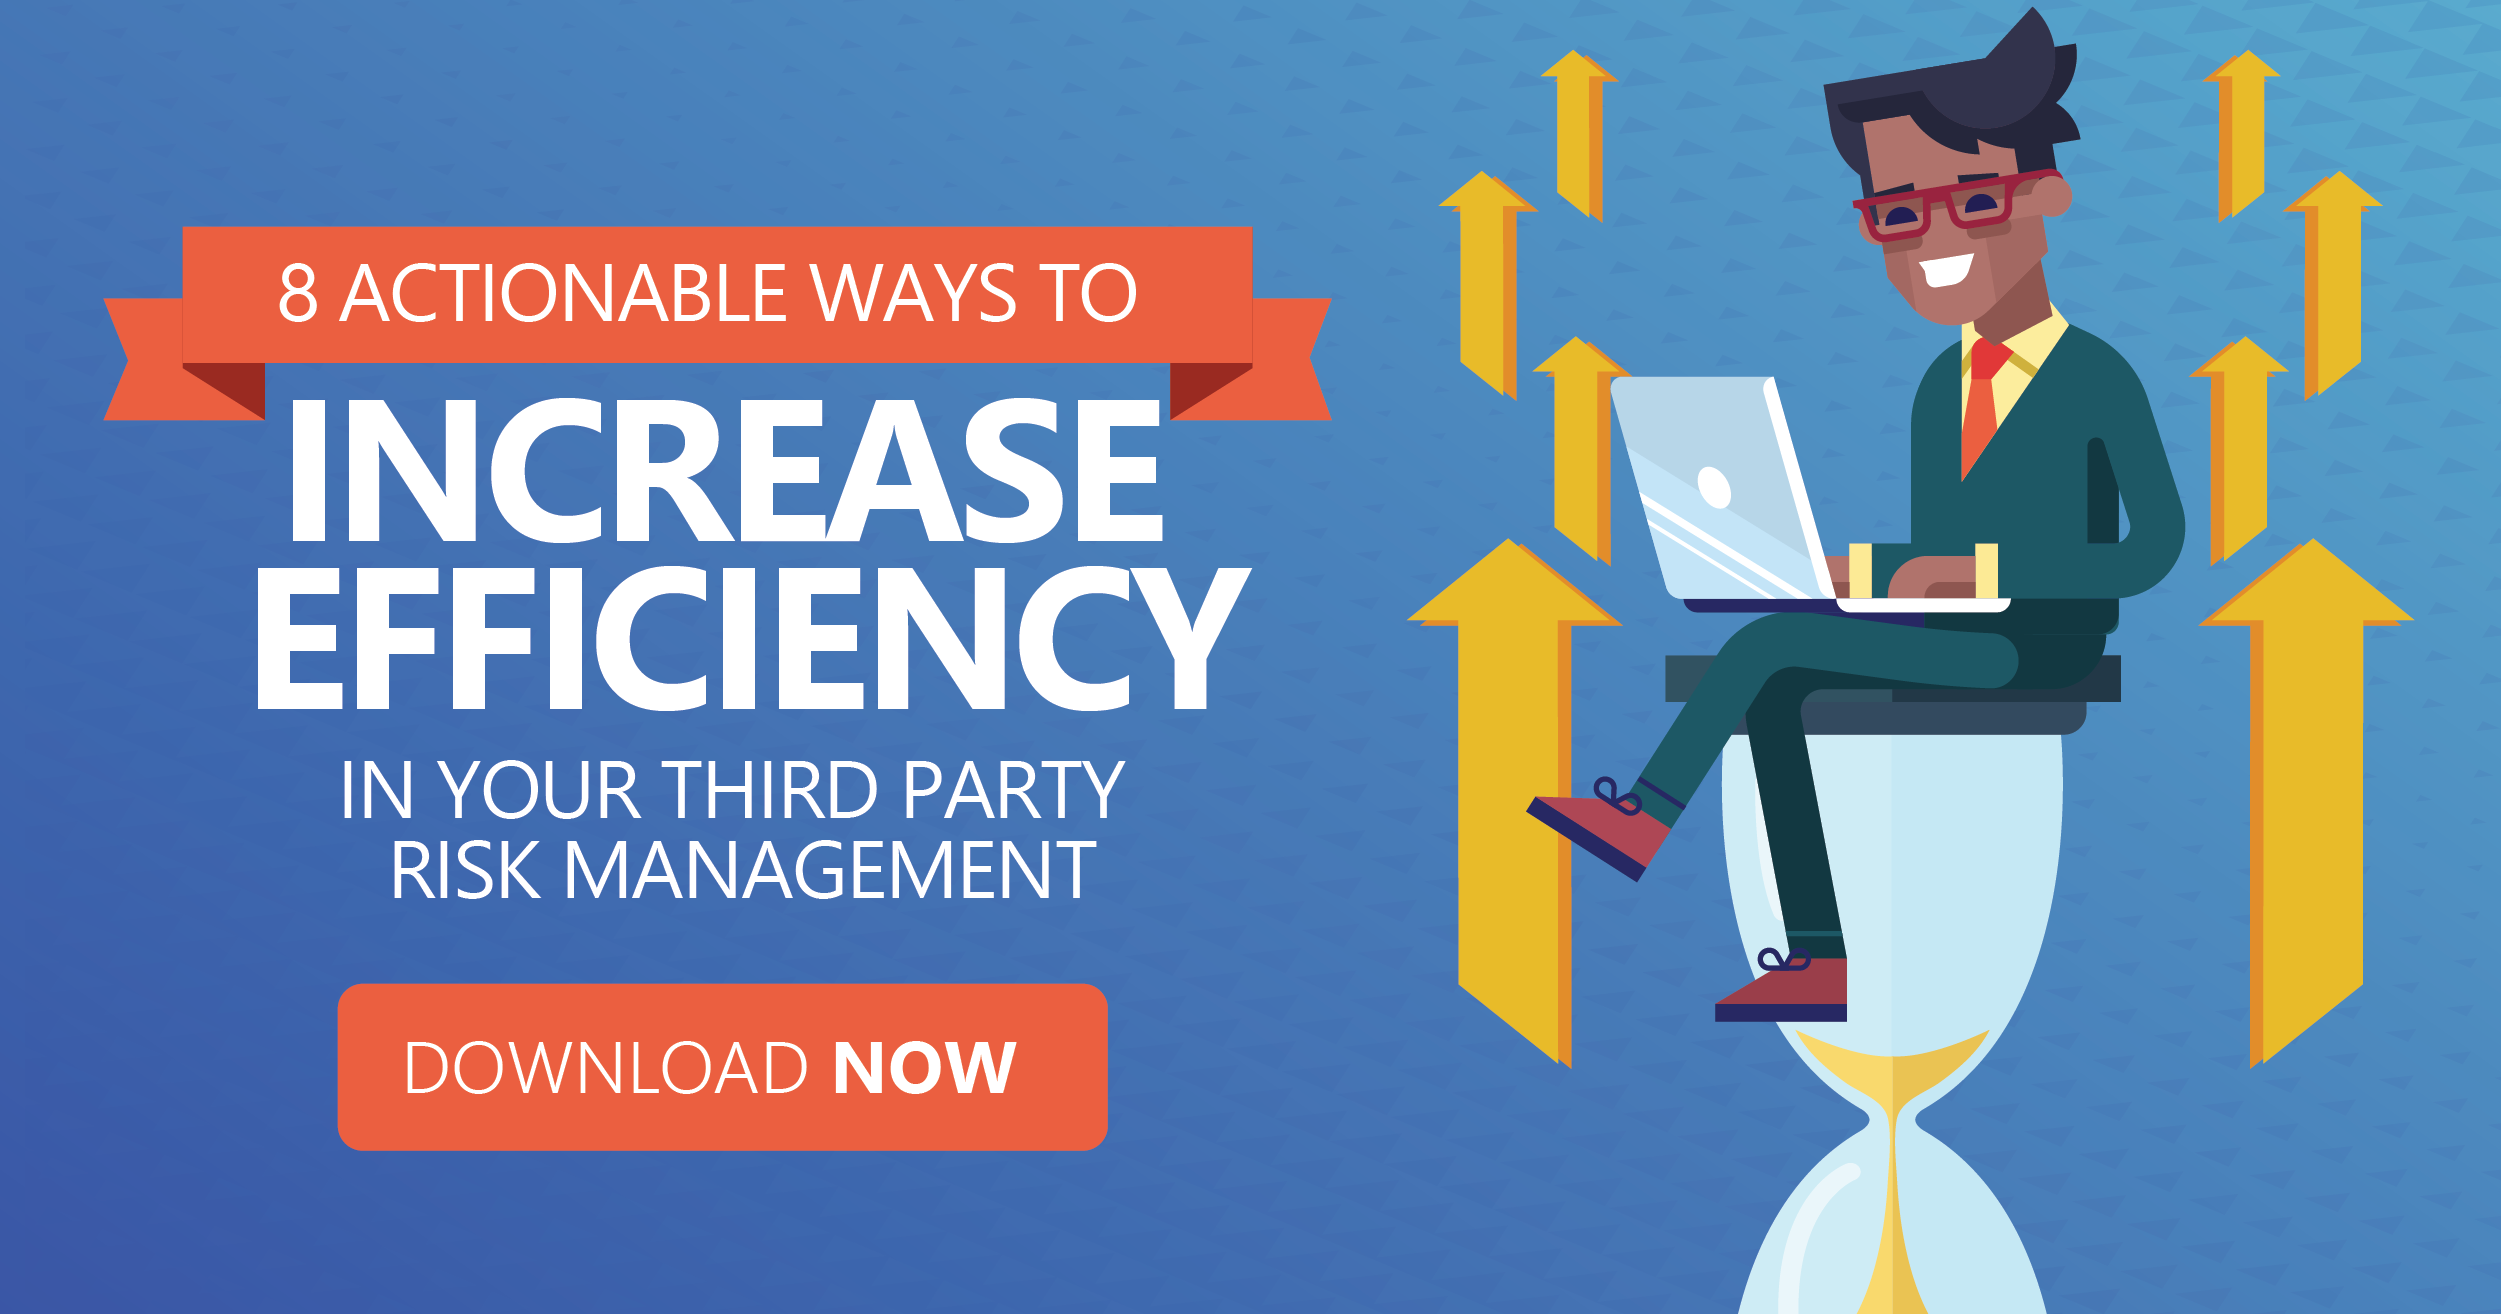 8 actionable ways increase efficiency third party risk management